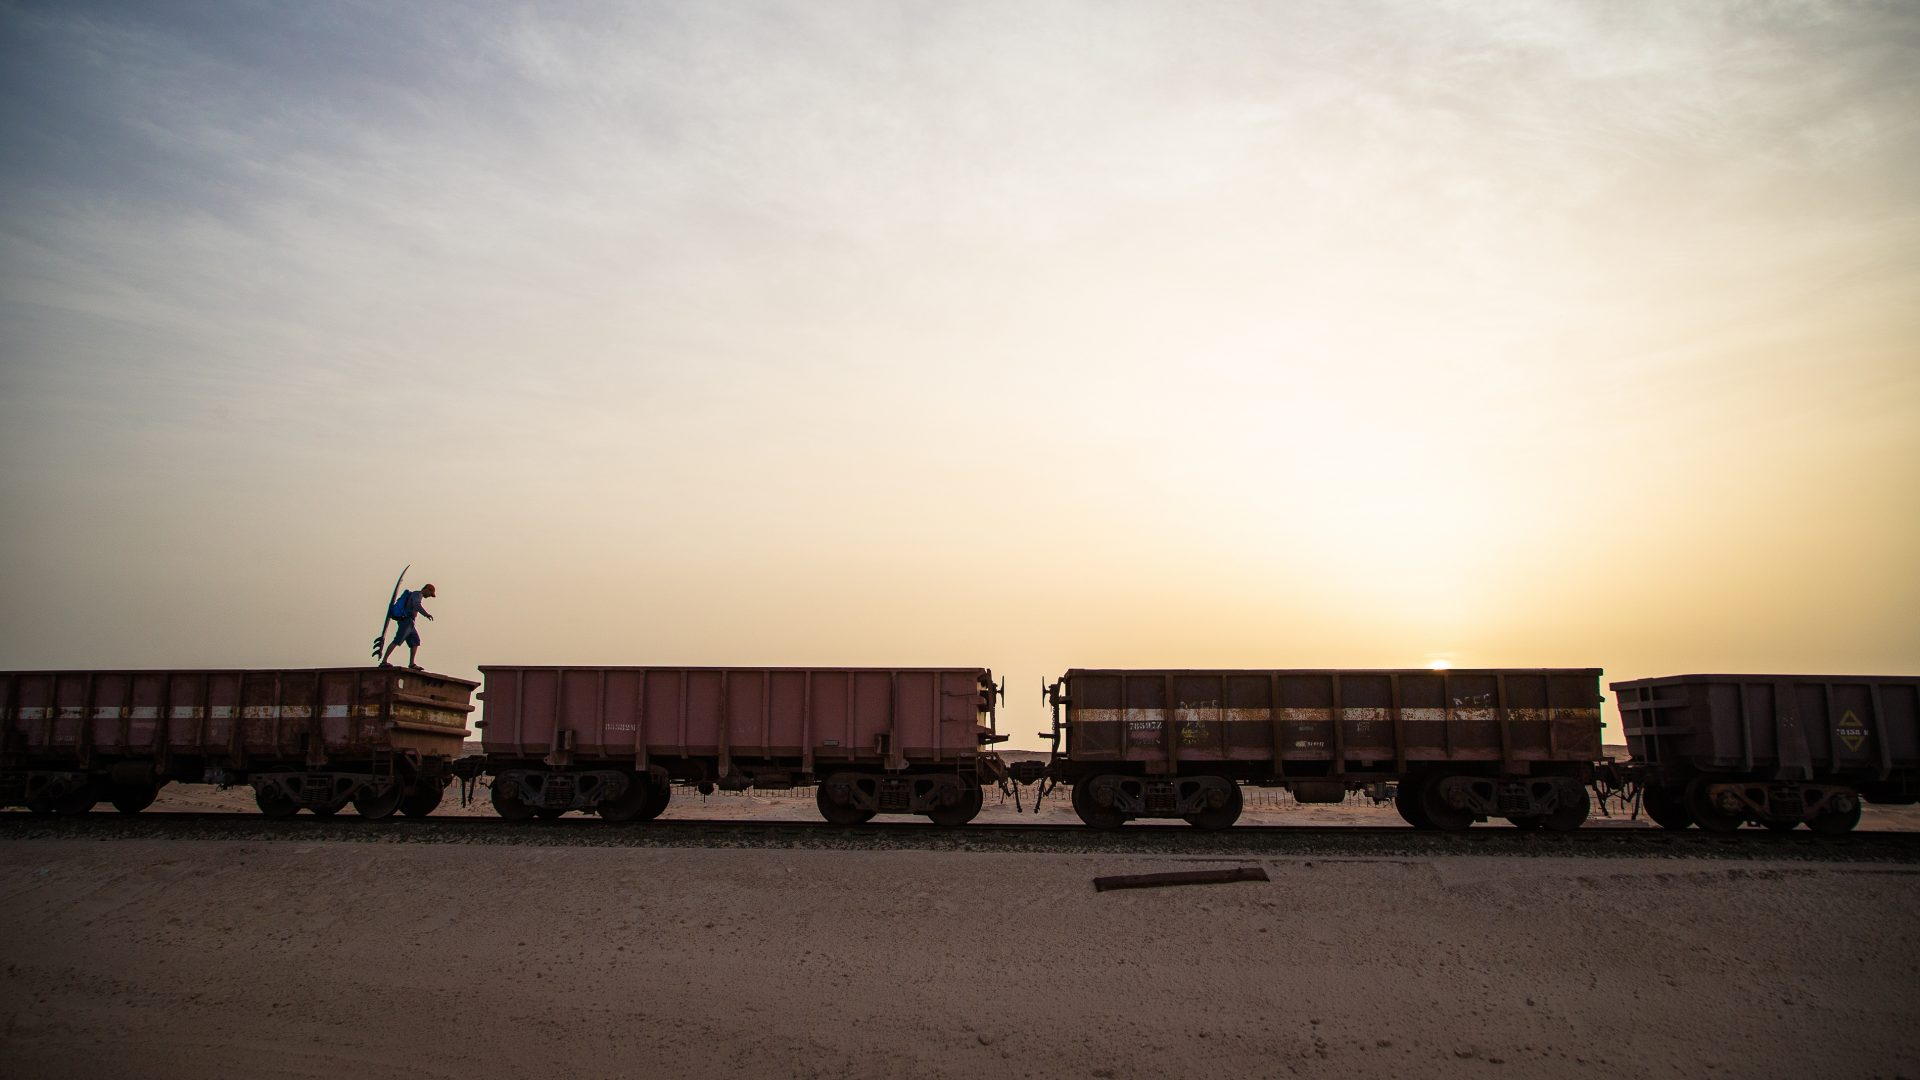 This photographer hopped freight trains through the Sahara